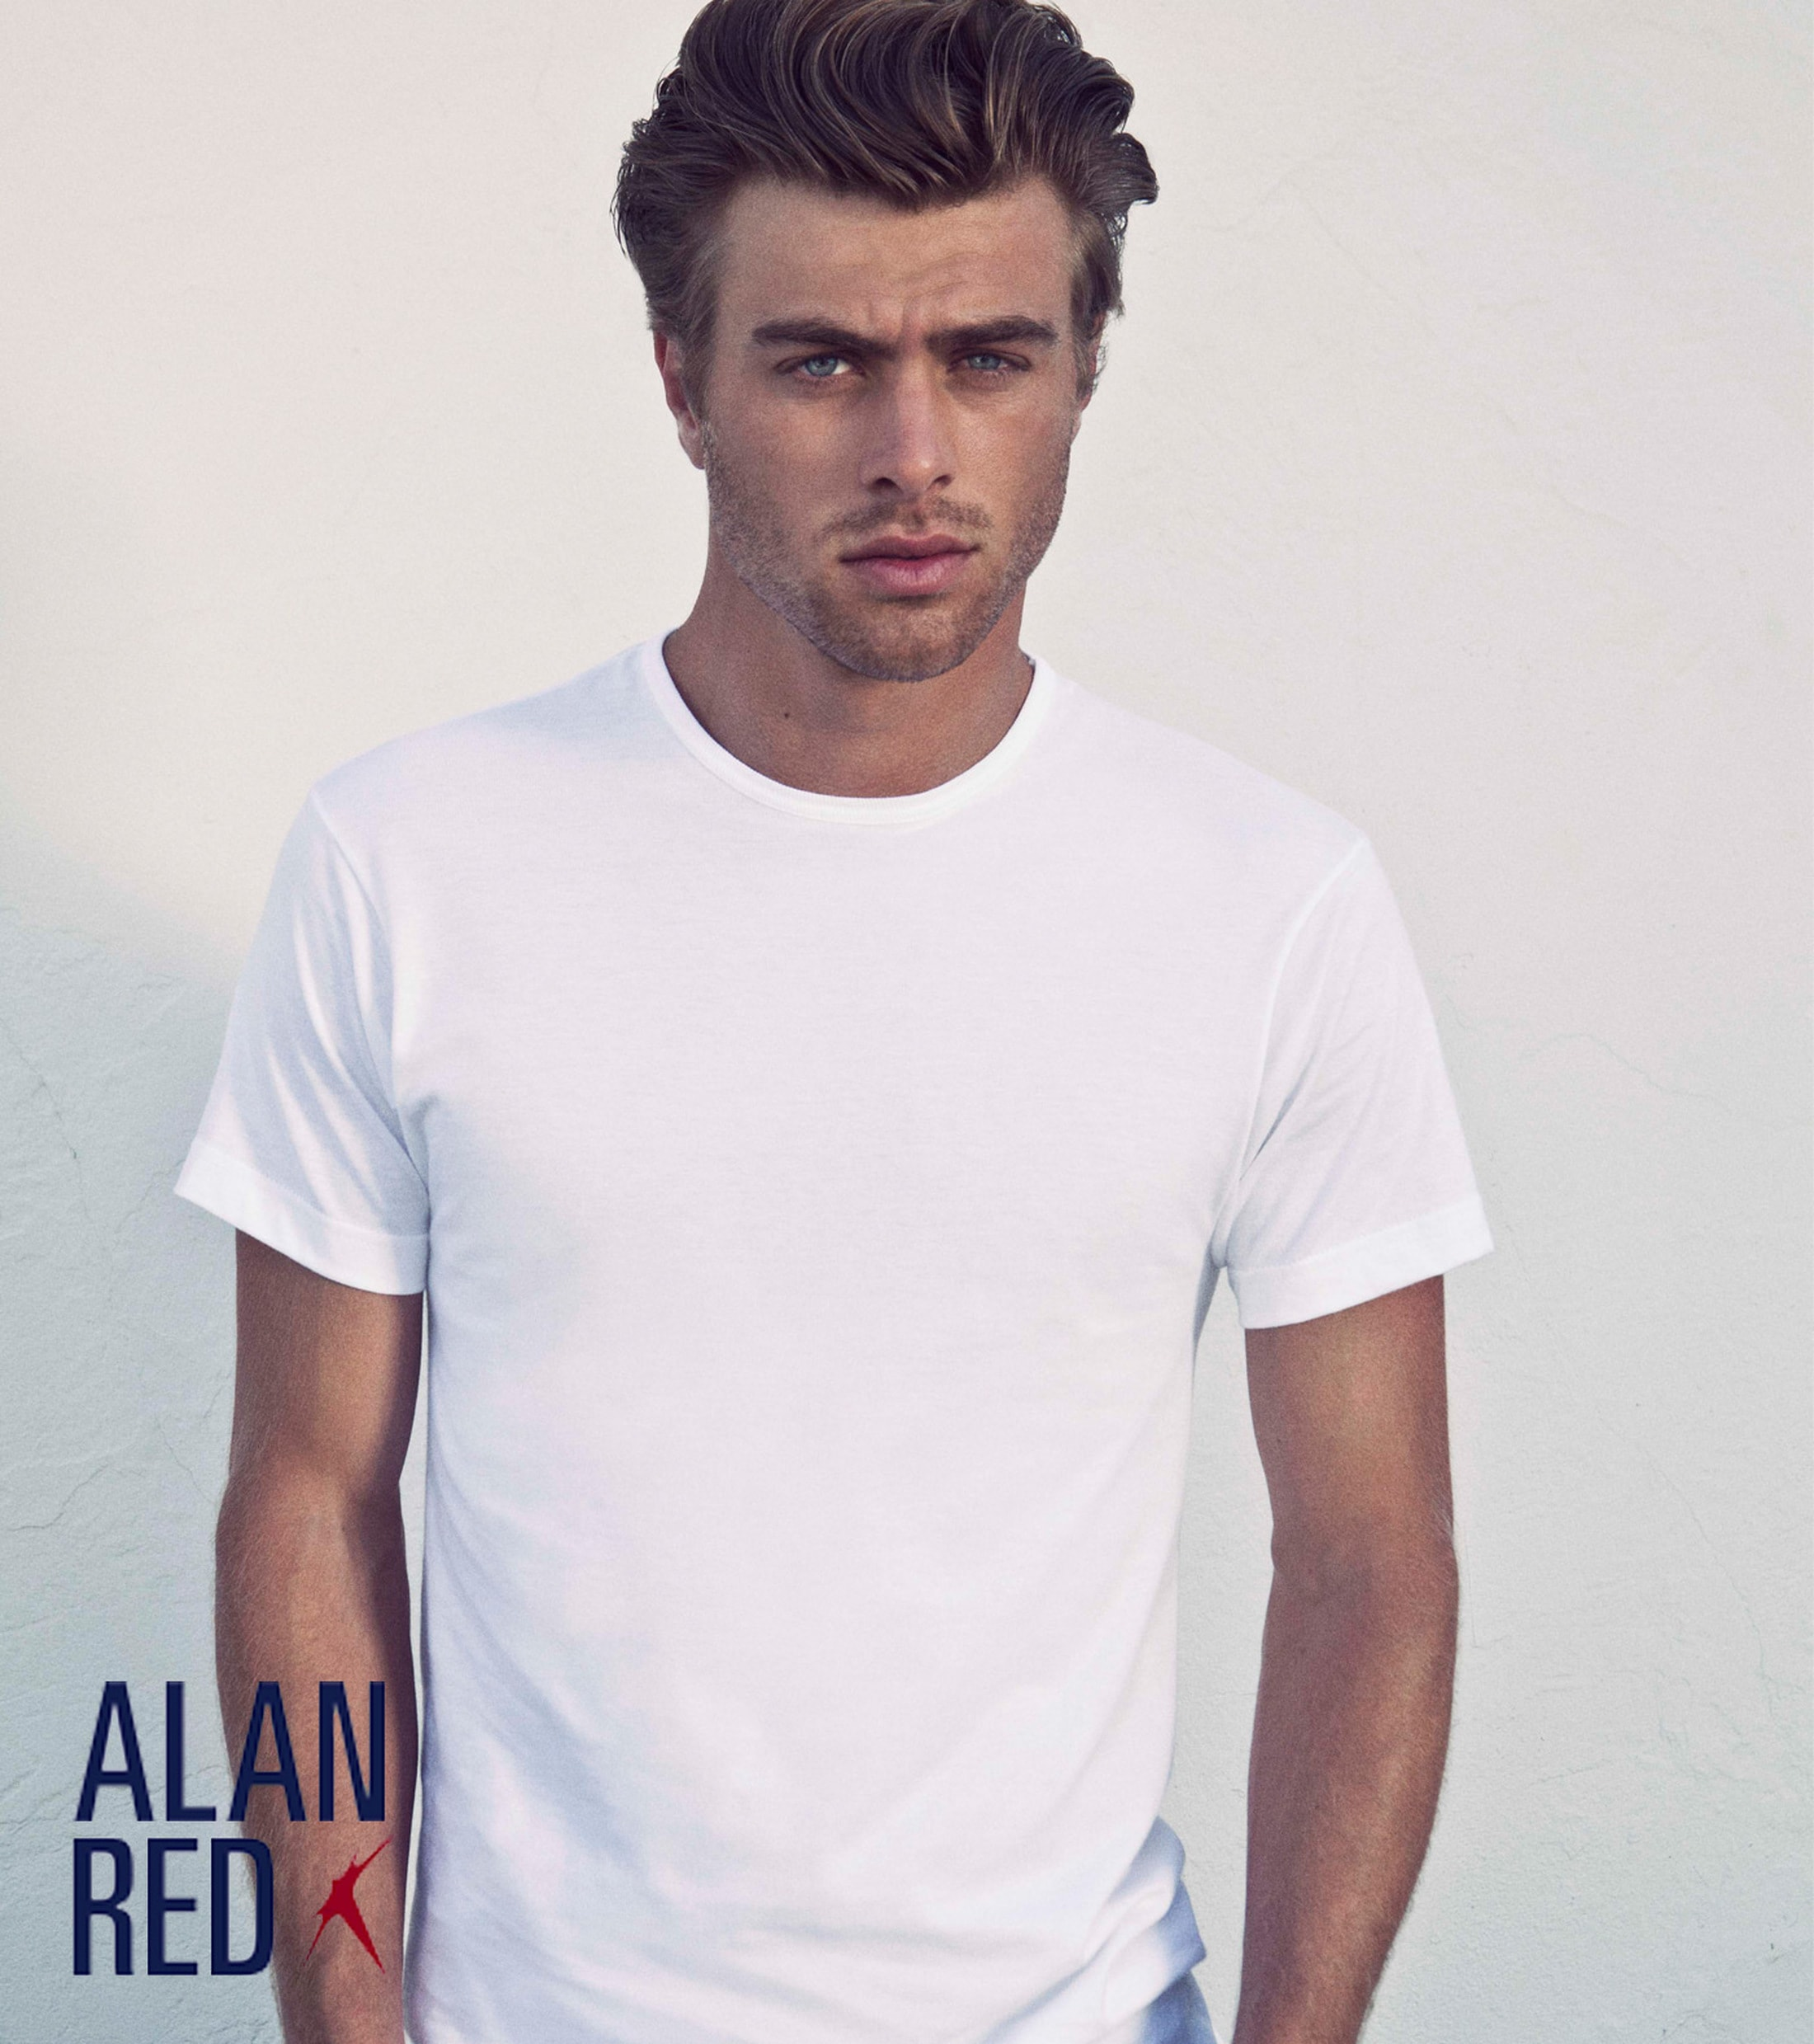 Alan Red Special Offer O-Neck T-shirts White 6-Pack foto 3